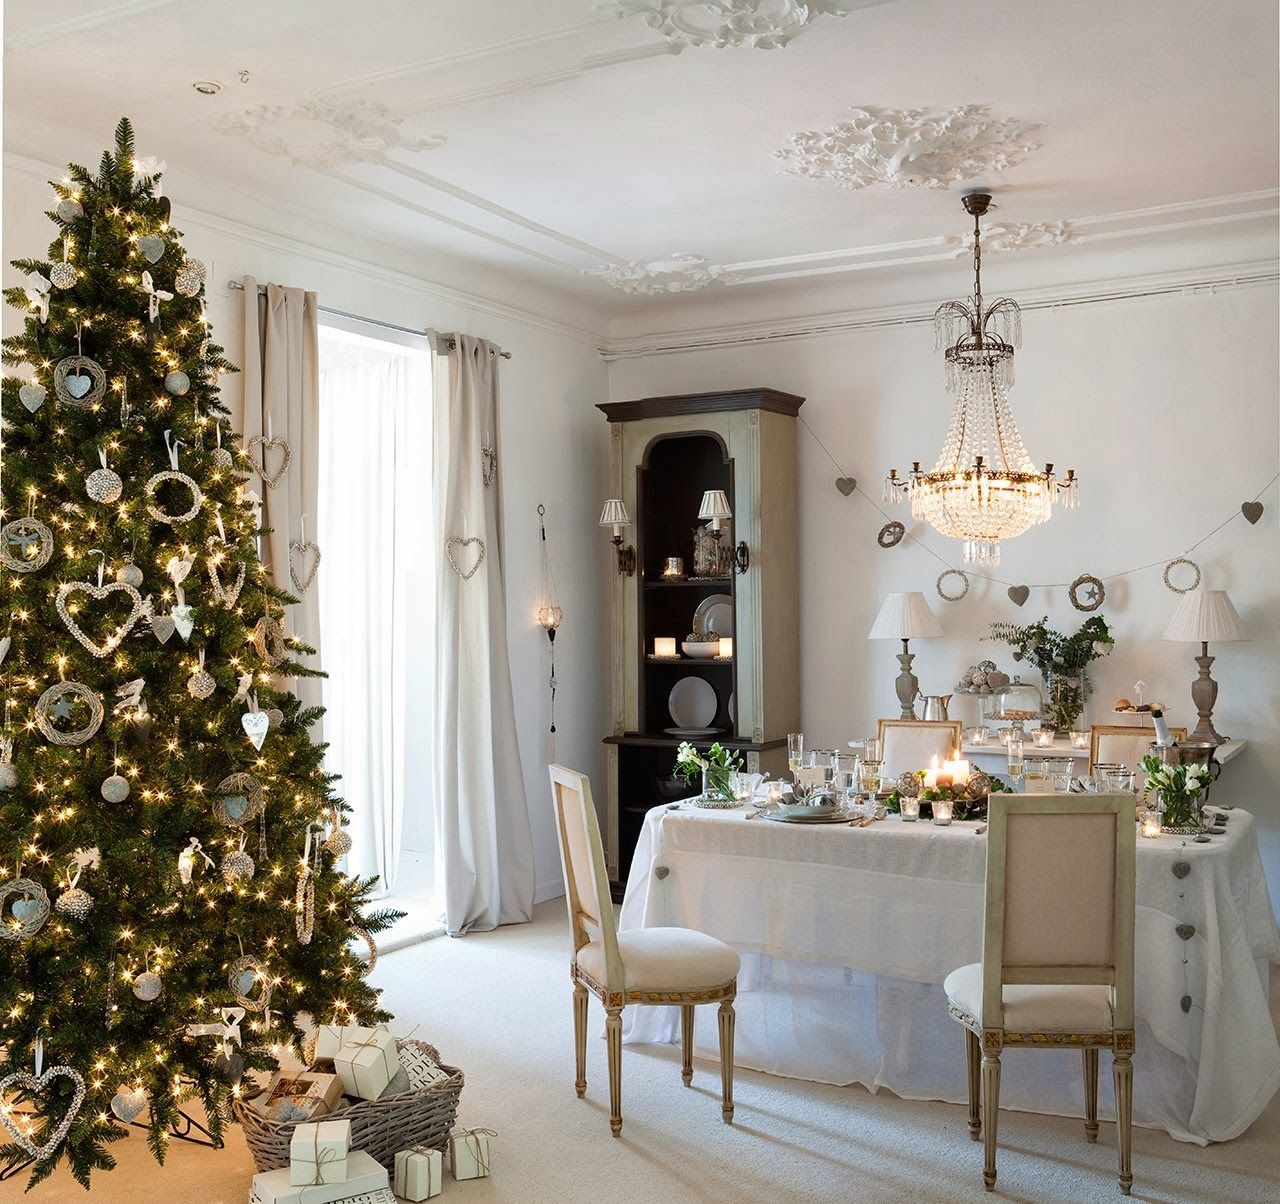 08a41__dining-room-christmas-tree-decoration-ideas